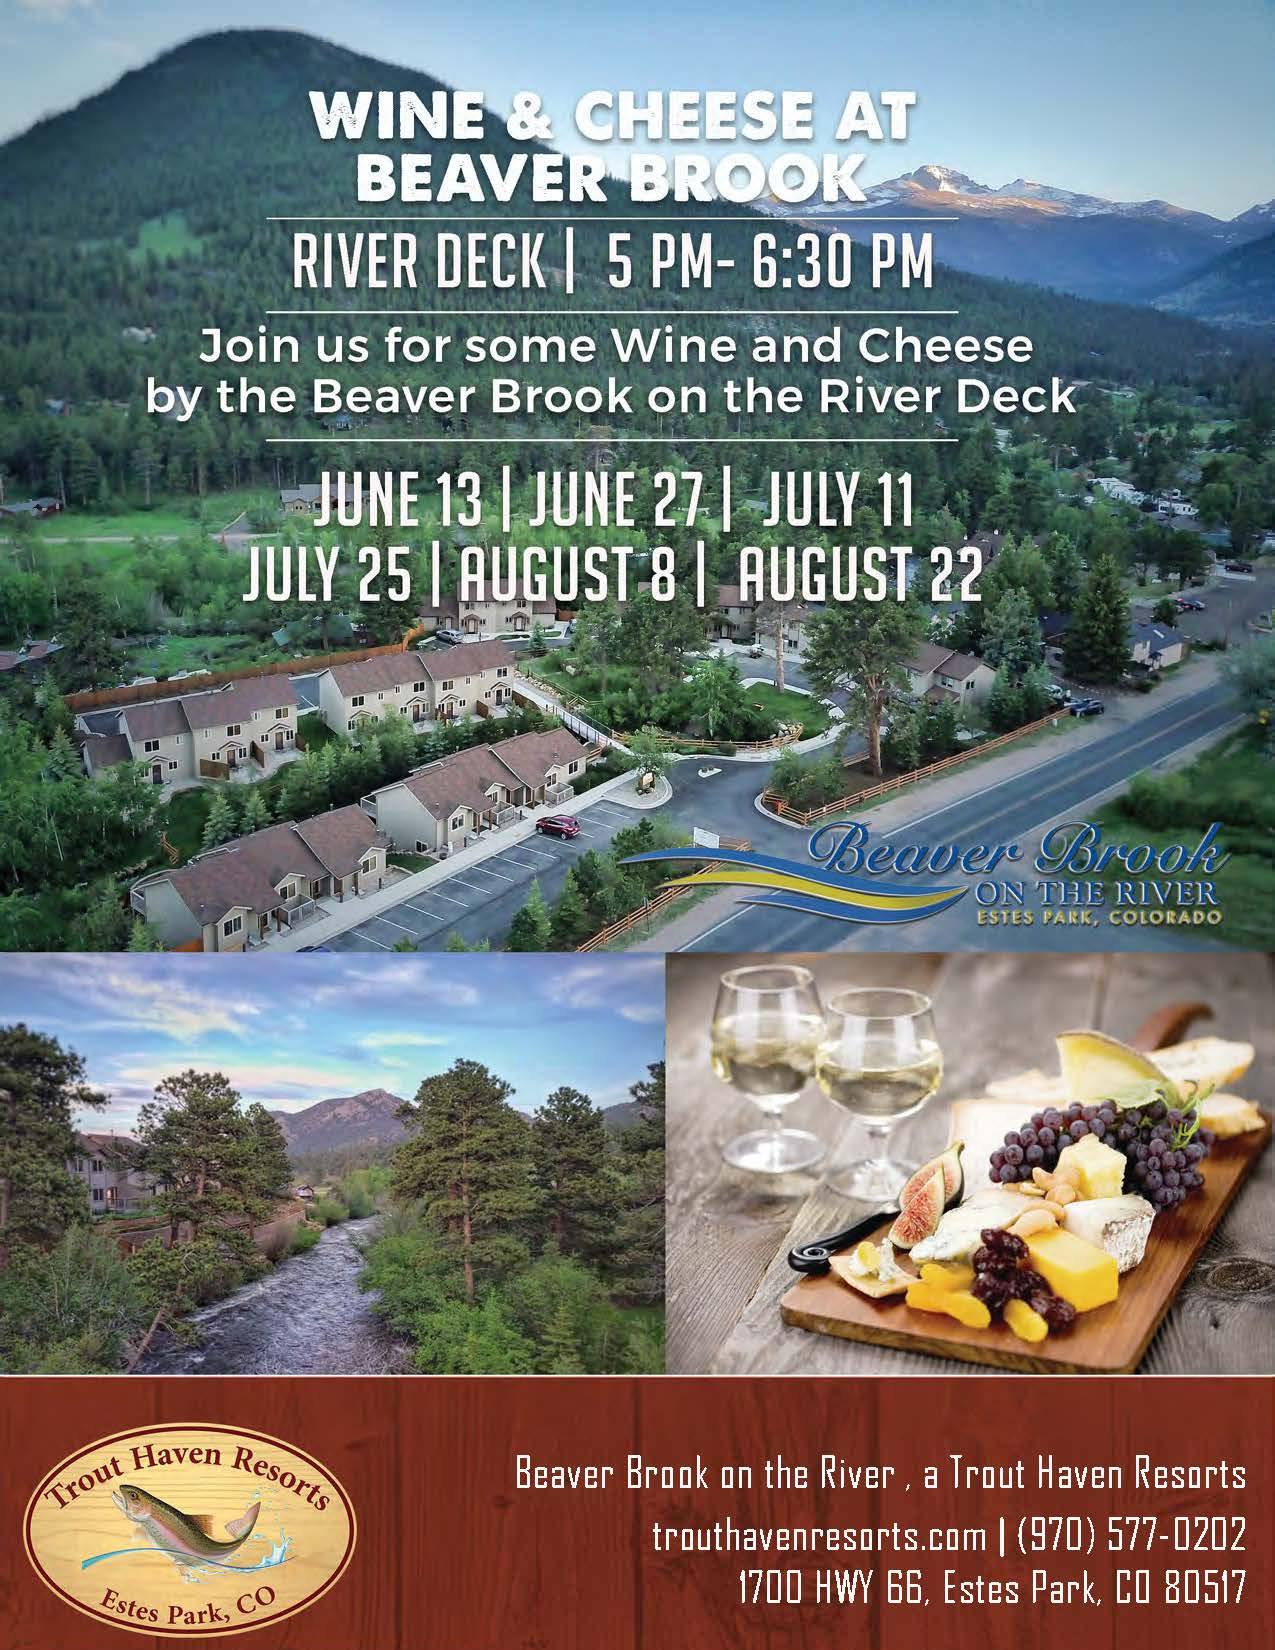 Beaver Brook on the River 2019 Event